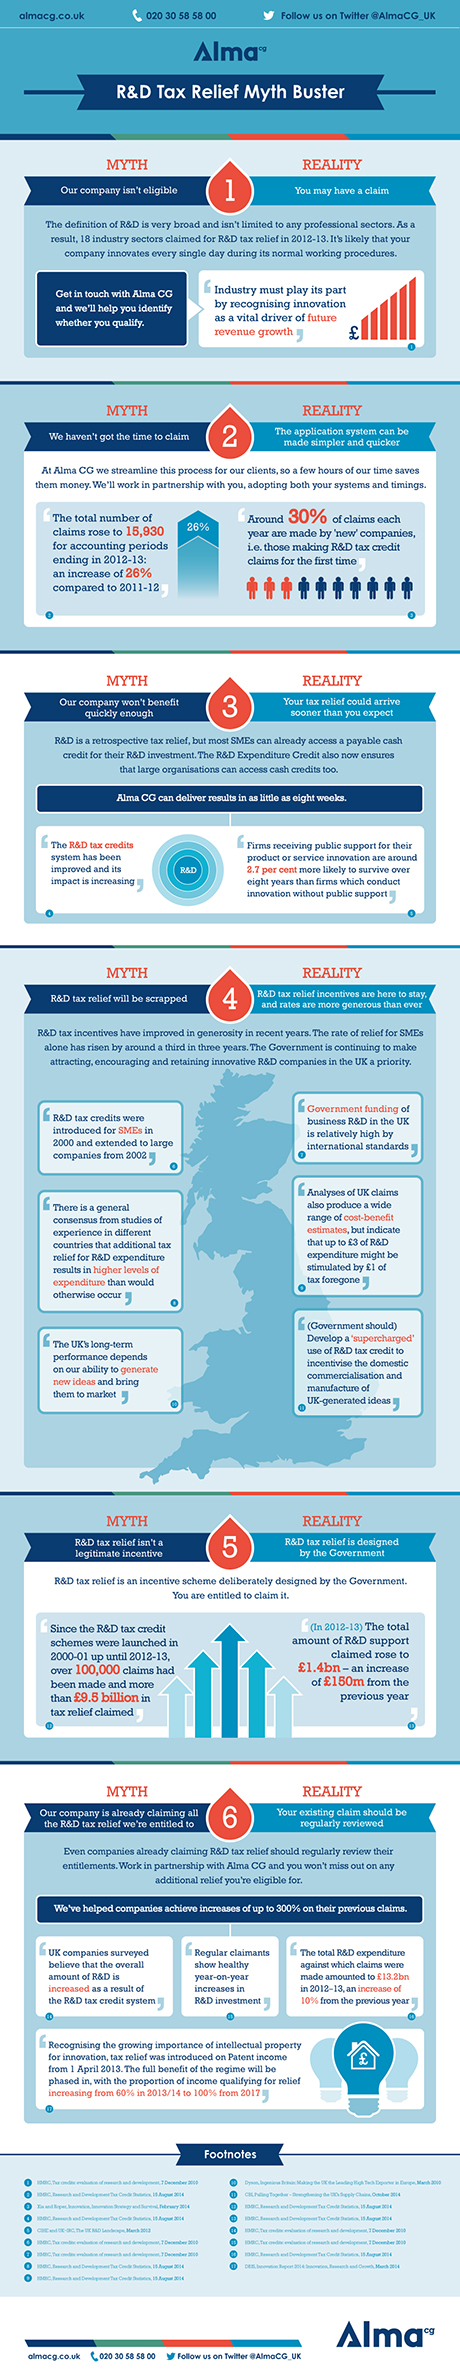 Alma R&D Tax Relief Myth Buster infographic 12.11.14 final